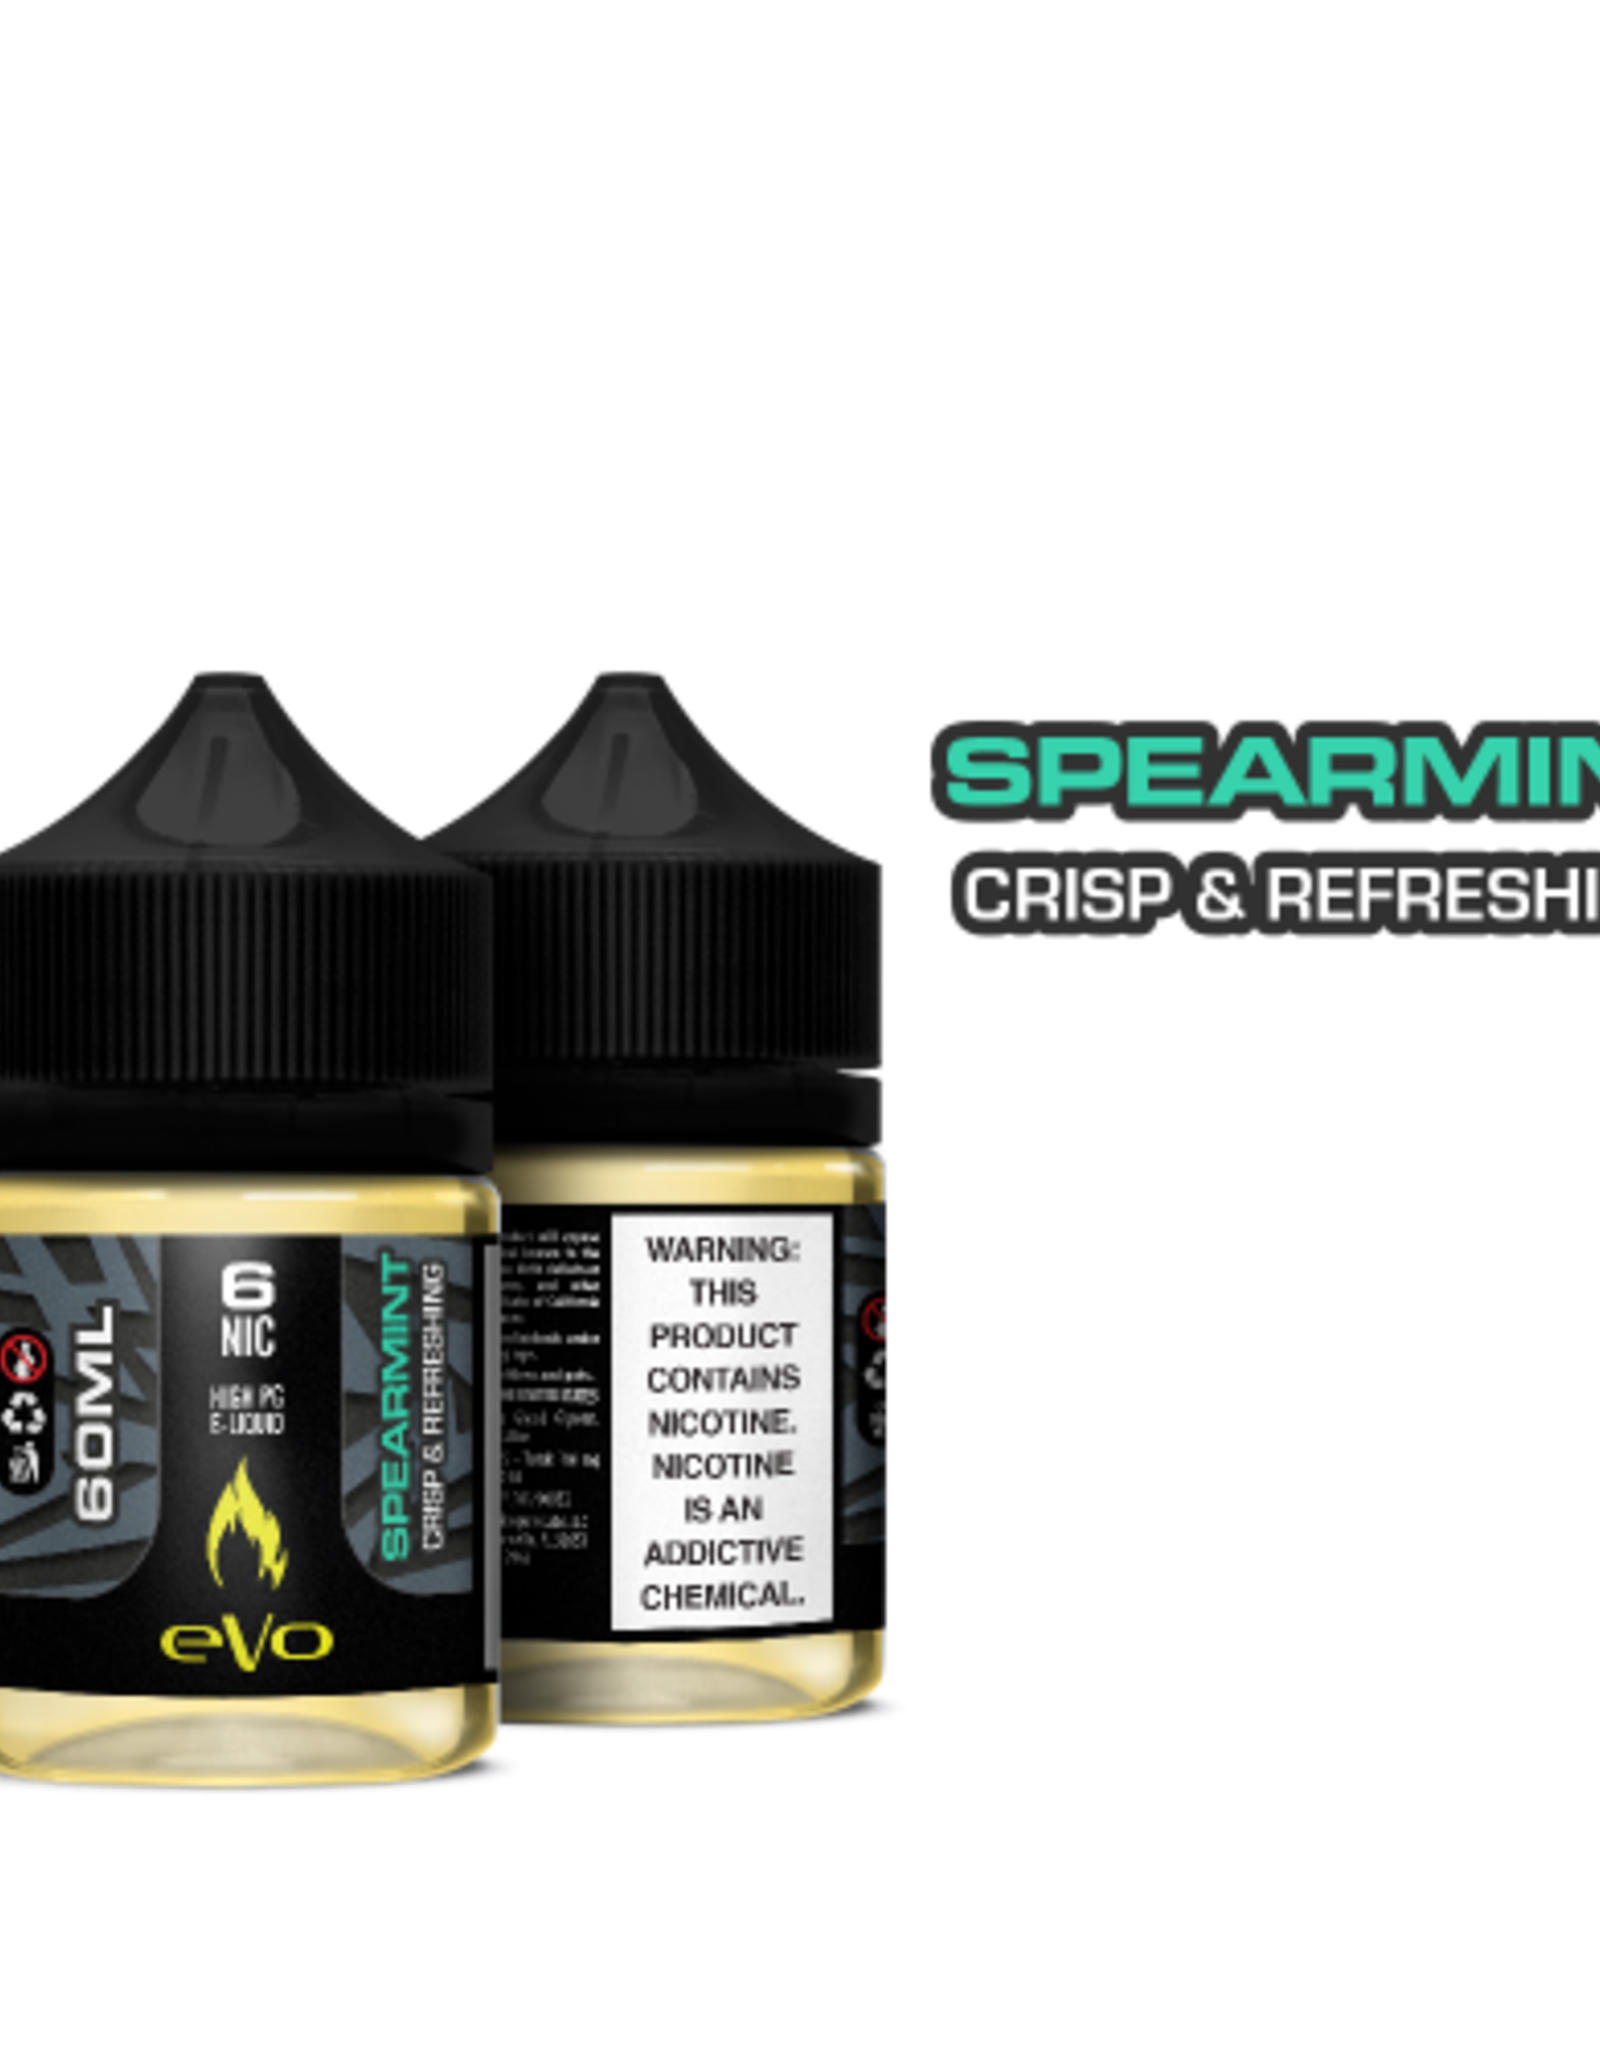 Halo Spearmint